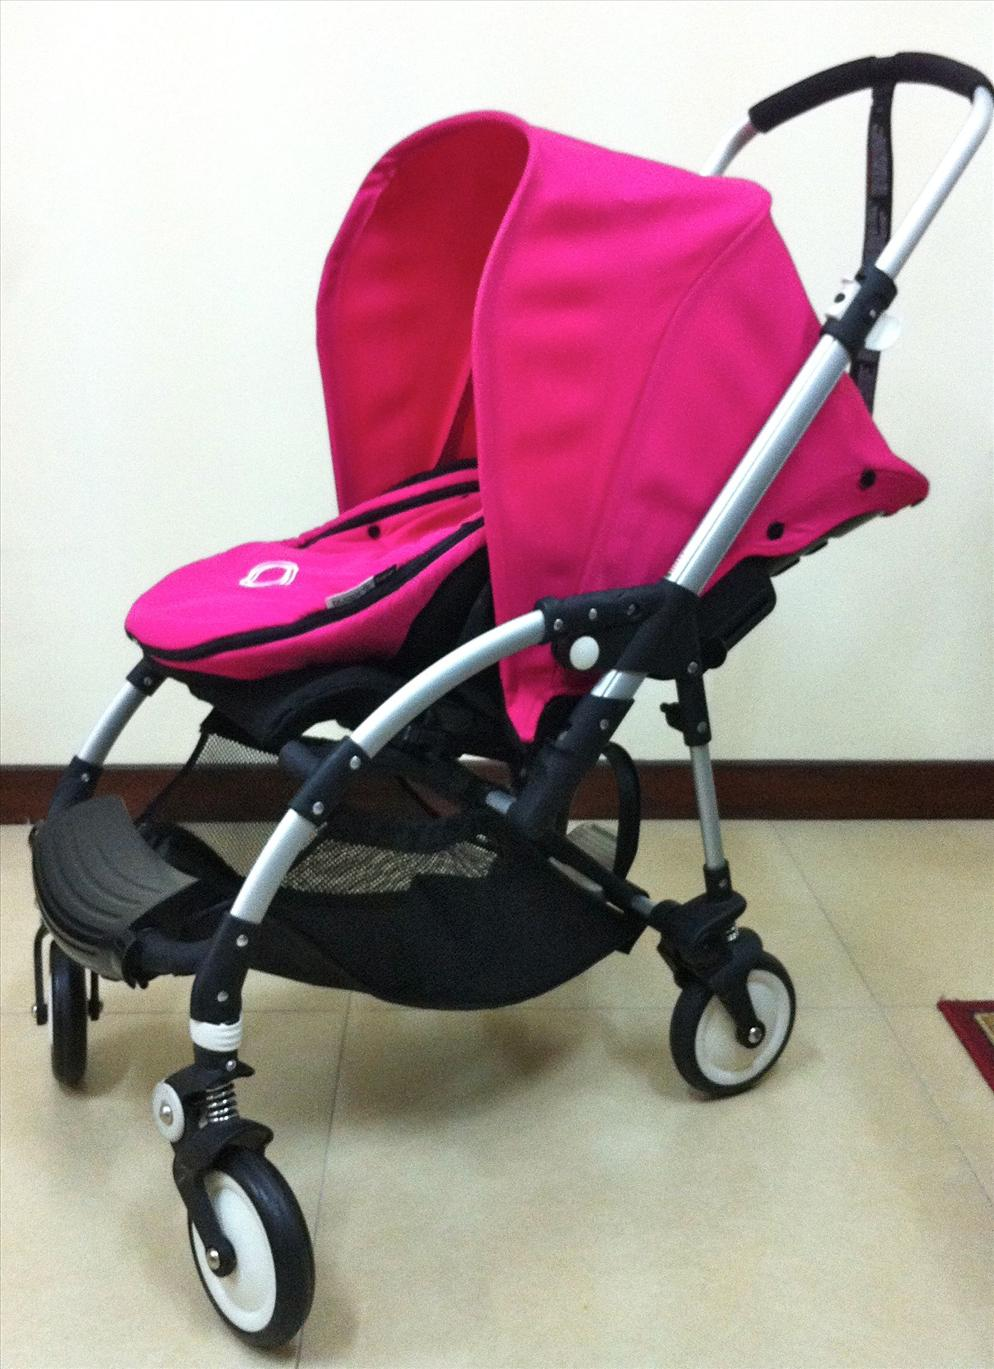 Pre-loved baby stroller for sale - Bugaboo Bee (2010